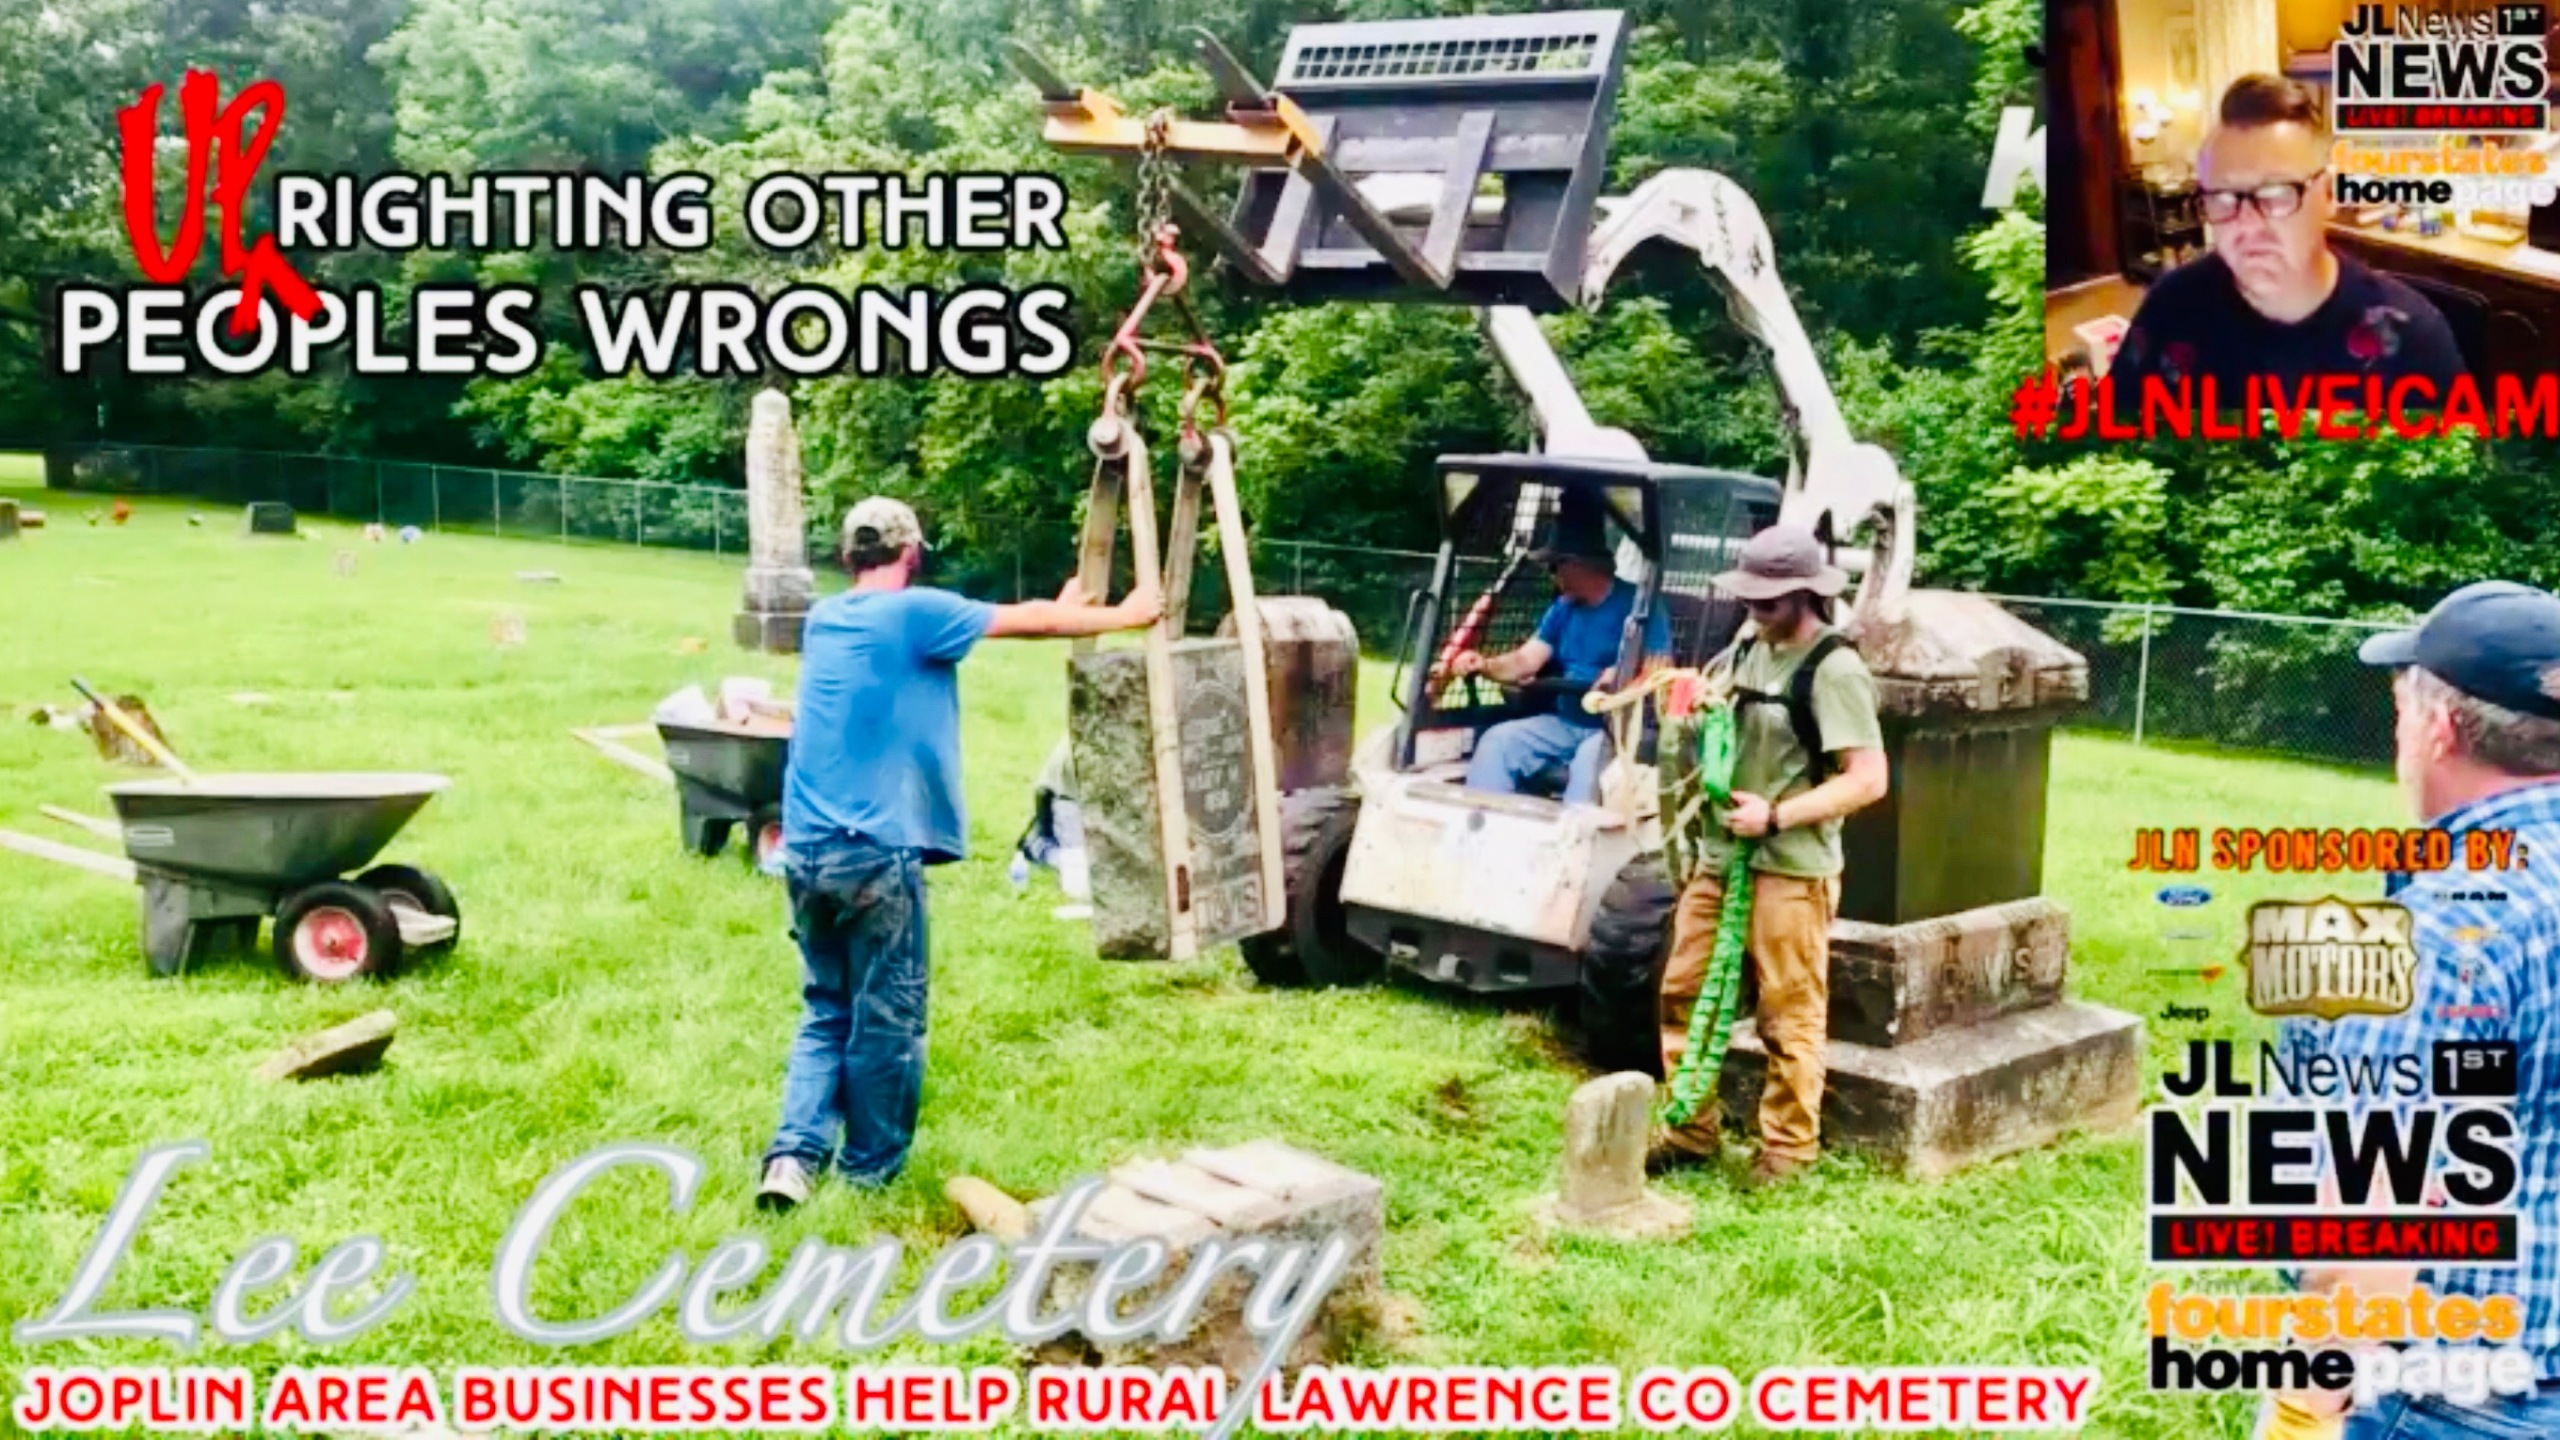 UP'righting other people's wrongs at Lee Cemetery in rural